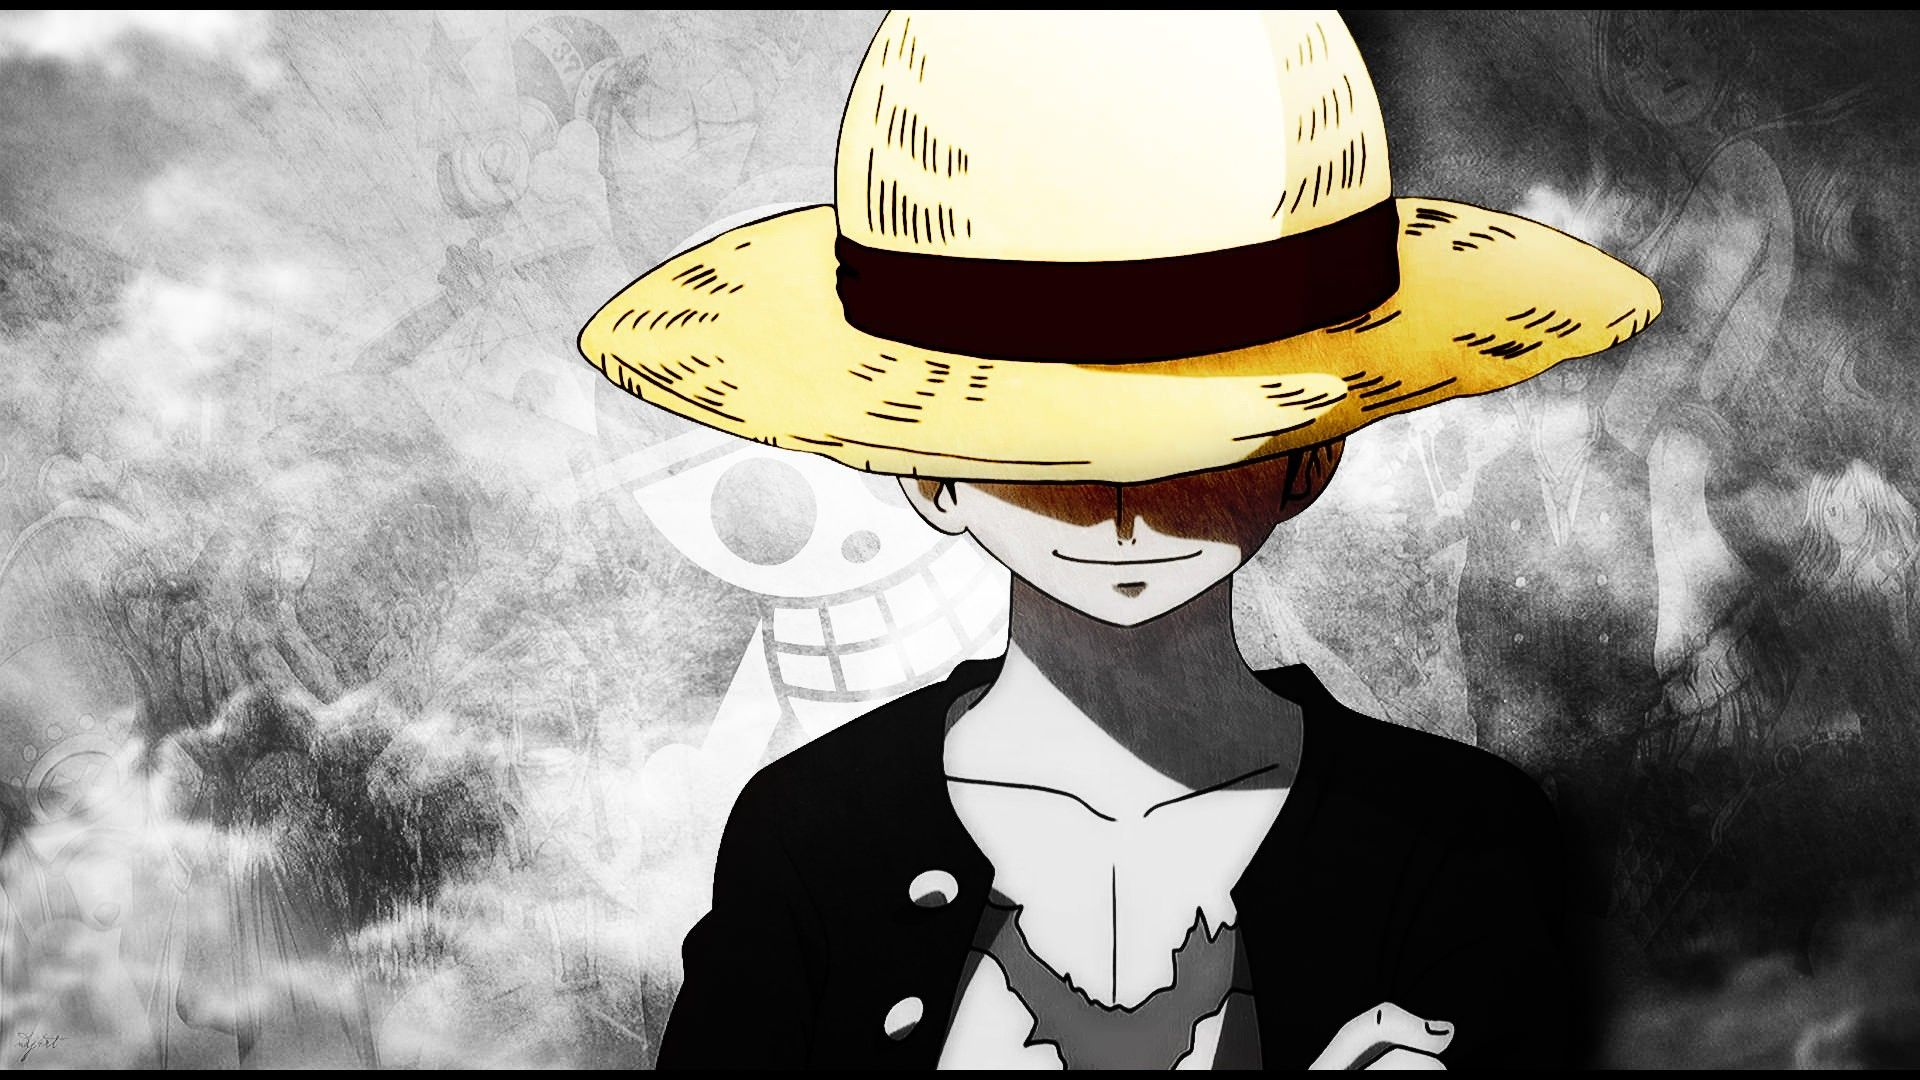 One Piece Luffy Wallpaper On Wallpaper 1080p Hd Anime Wallpaper 1920x1080 Monkey D Luffy One Piece Manga